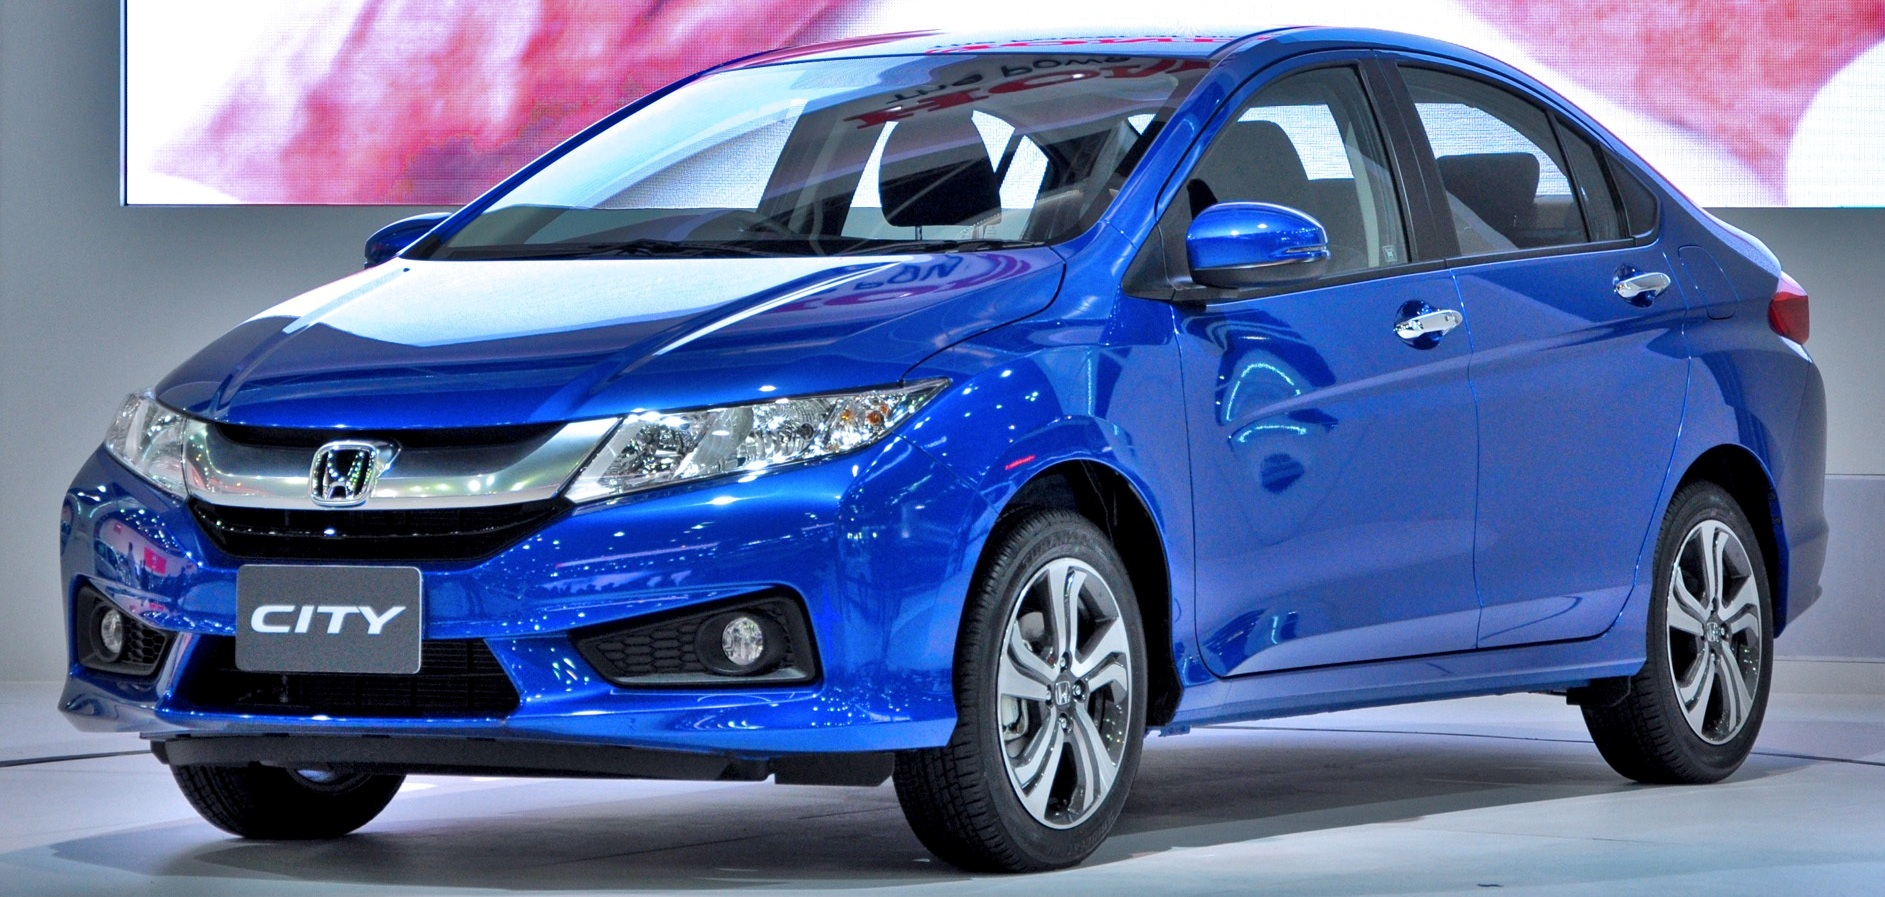 Honda City Wikipedia 88 Acura Tail Light Wiring Diagram Free Picture Overview